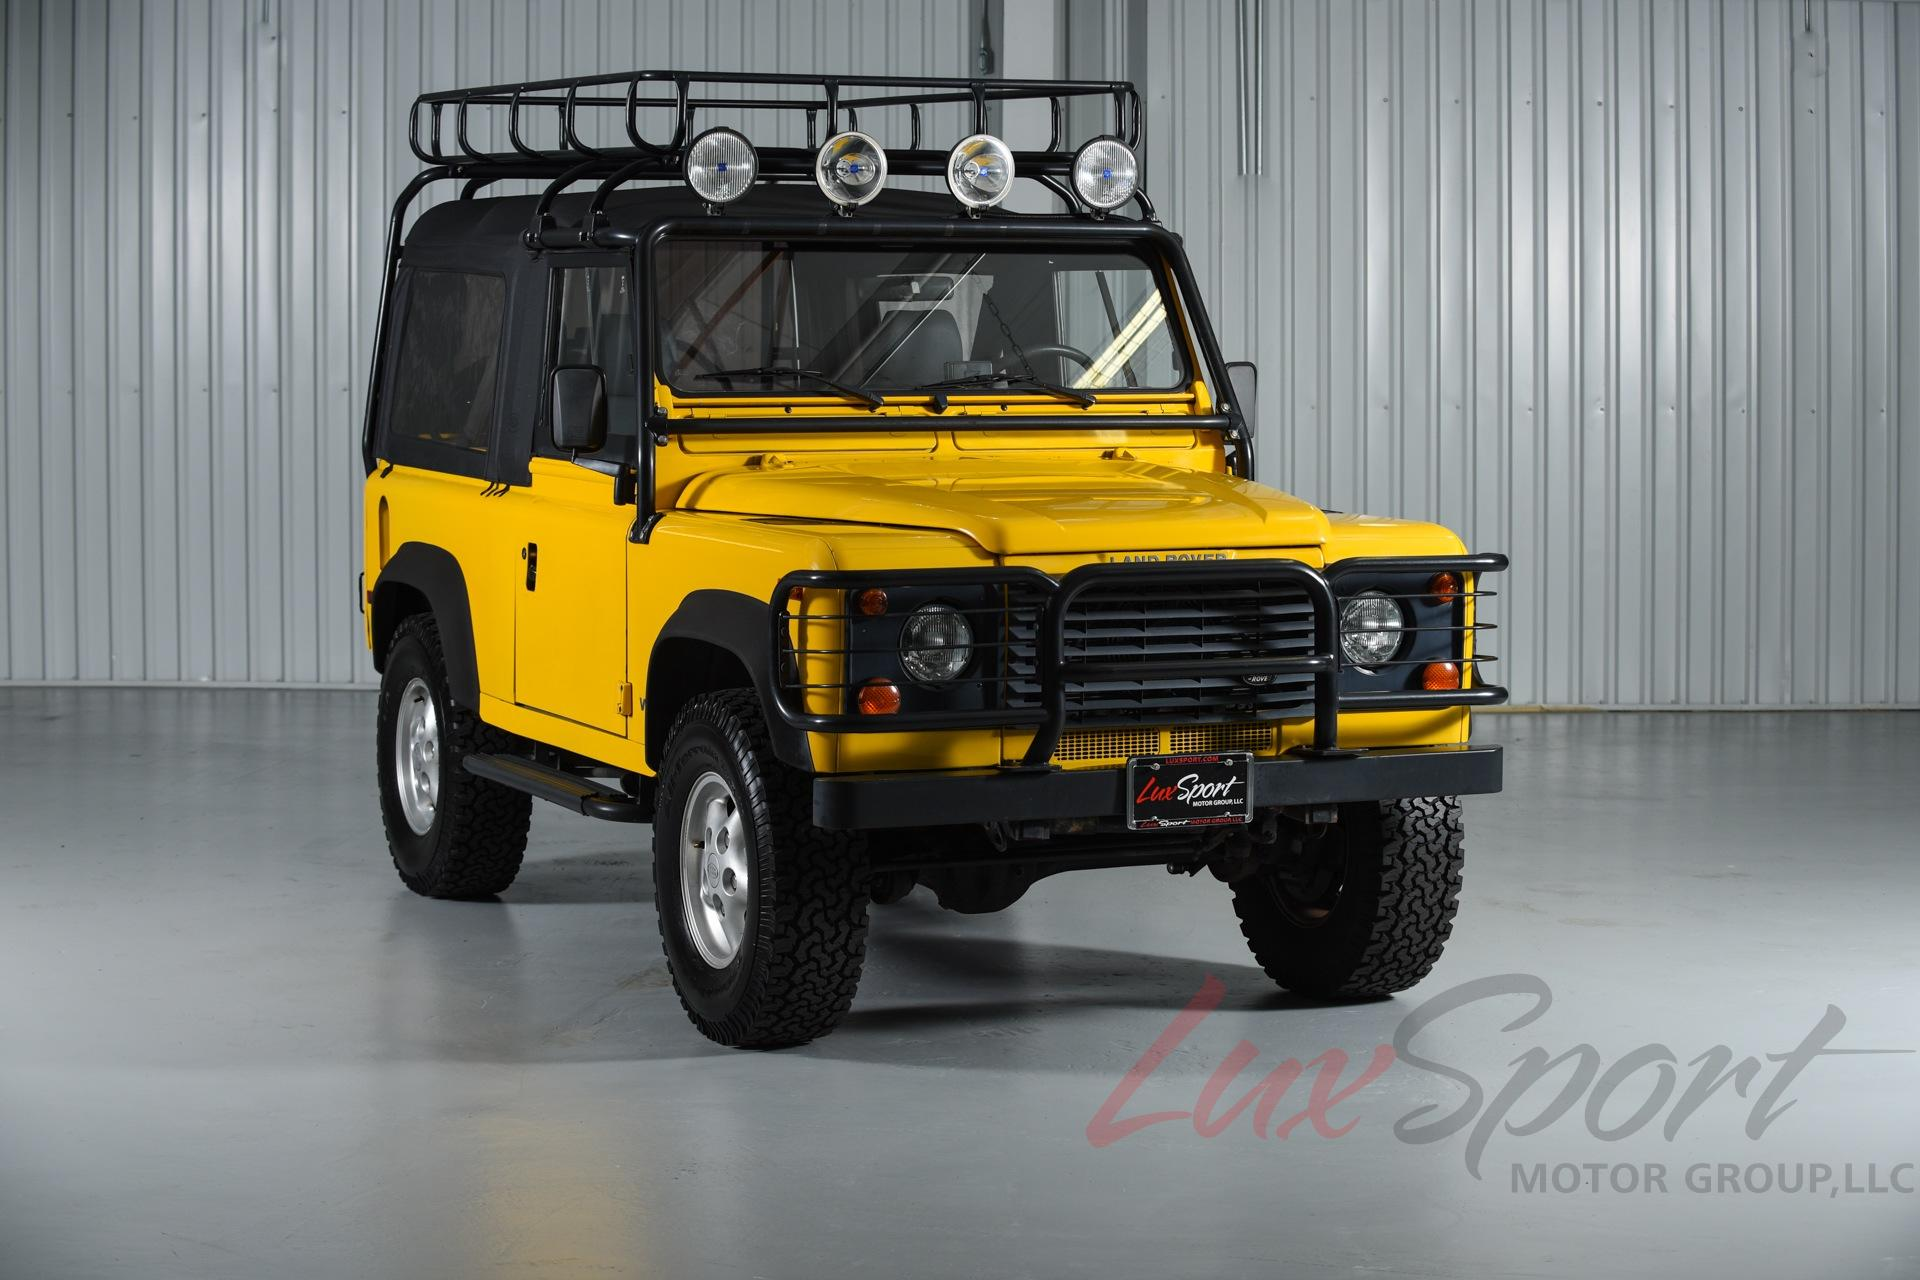 1997 land rover defender 90 90 stock 1997133 for sale near new hyde park ny ny land rover - Land rover garage near me ...